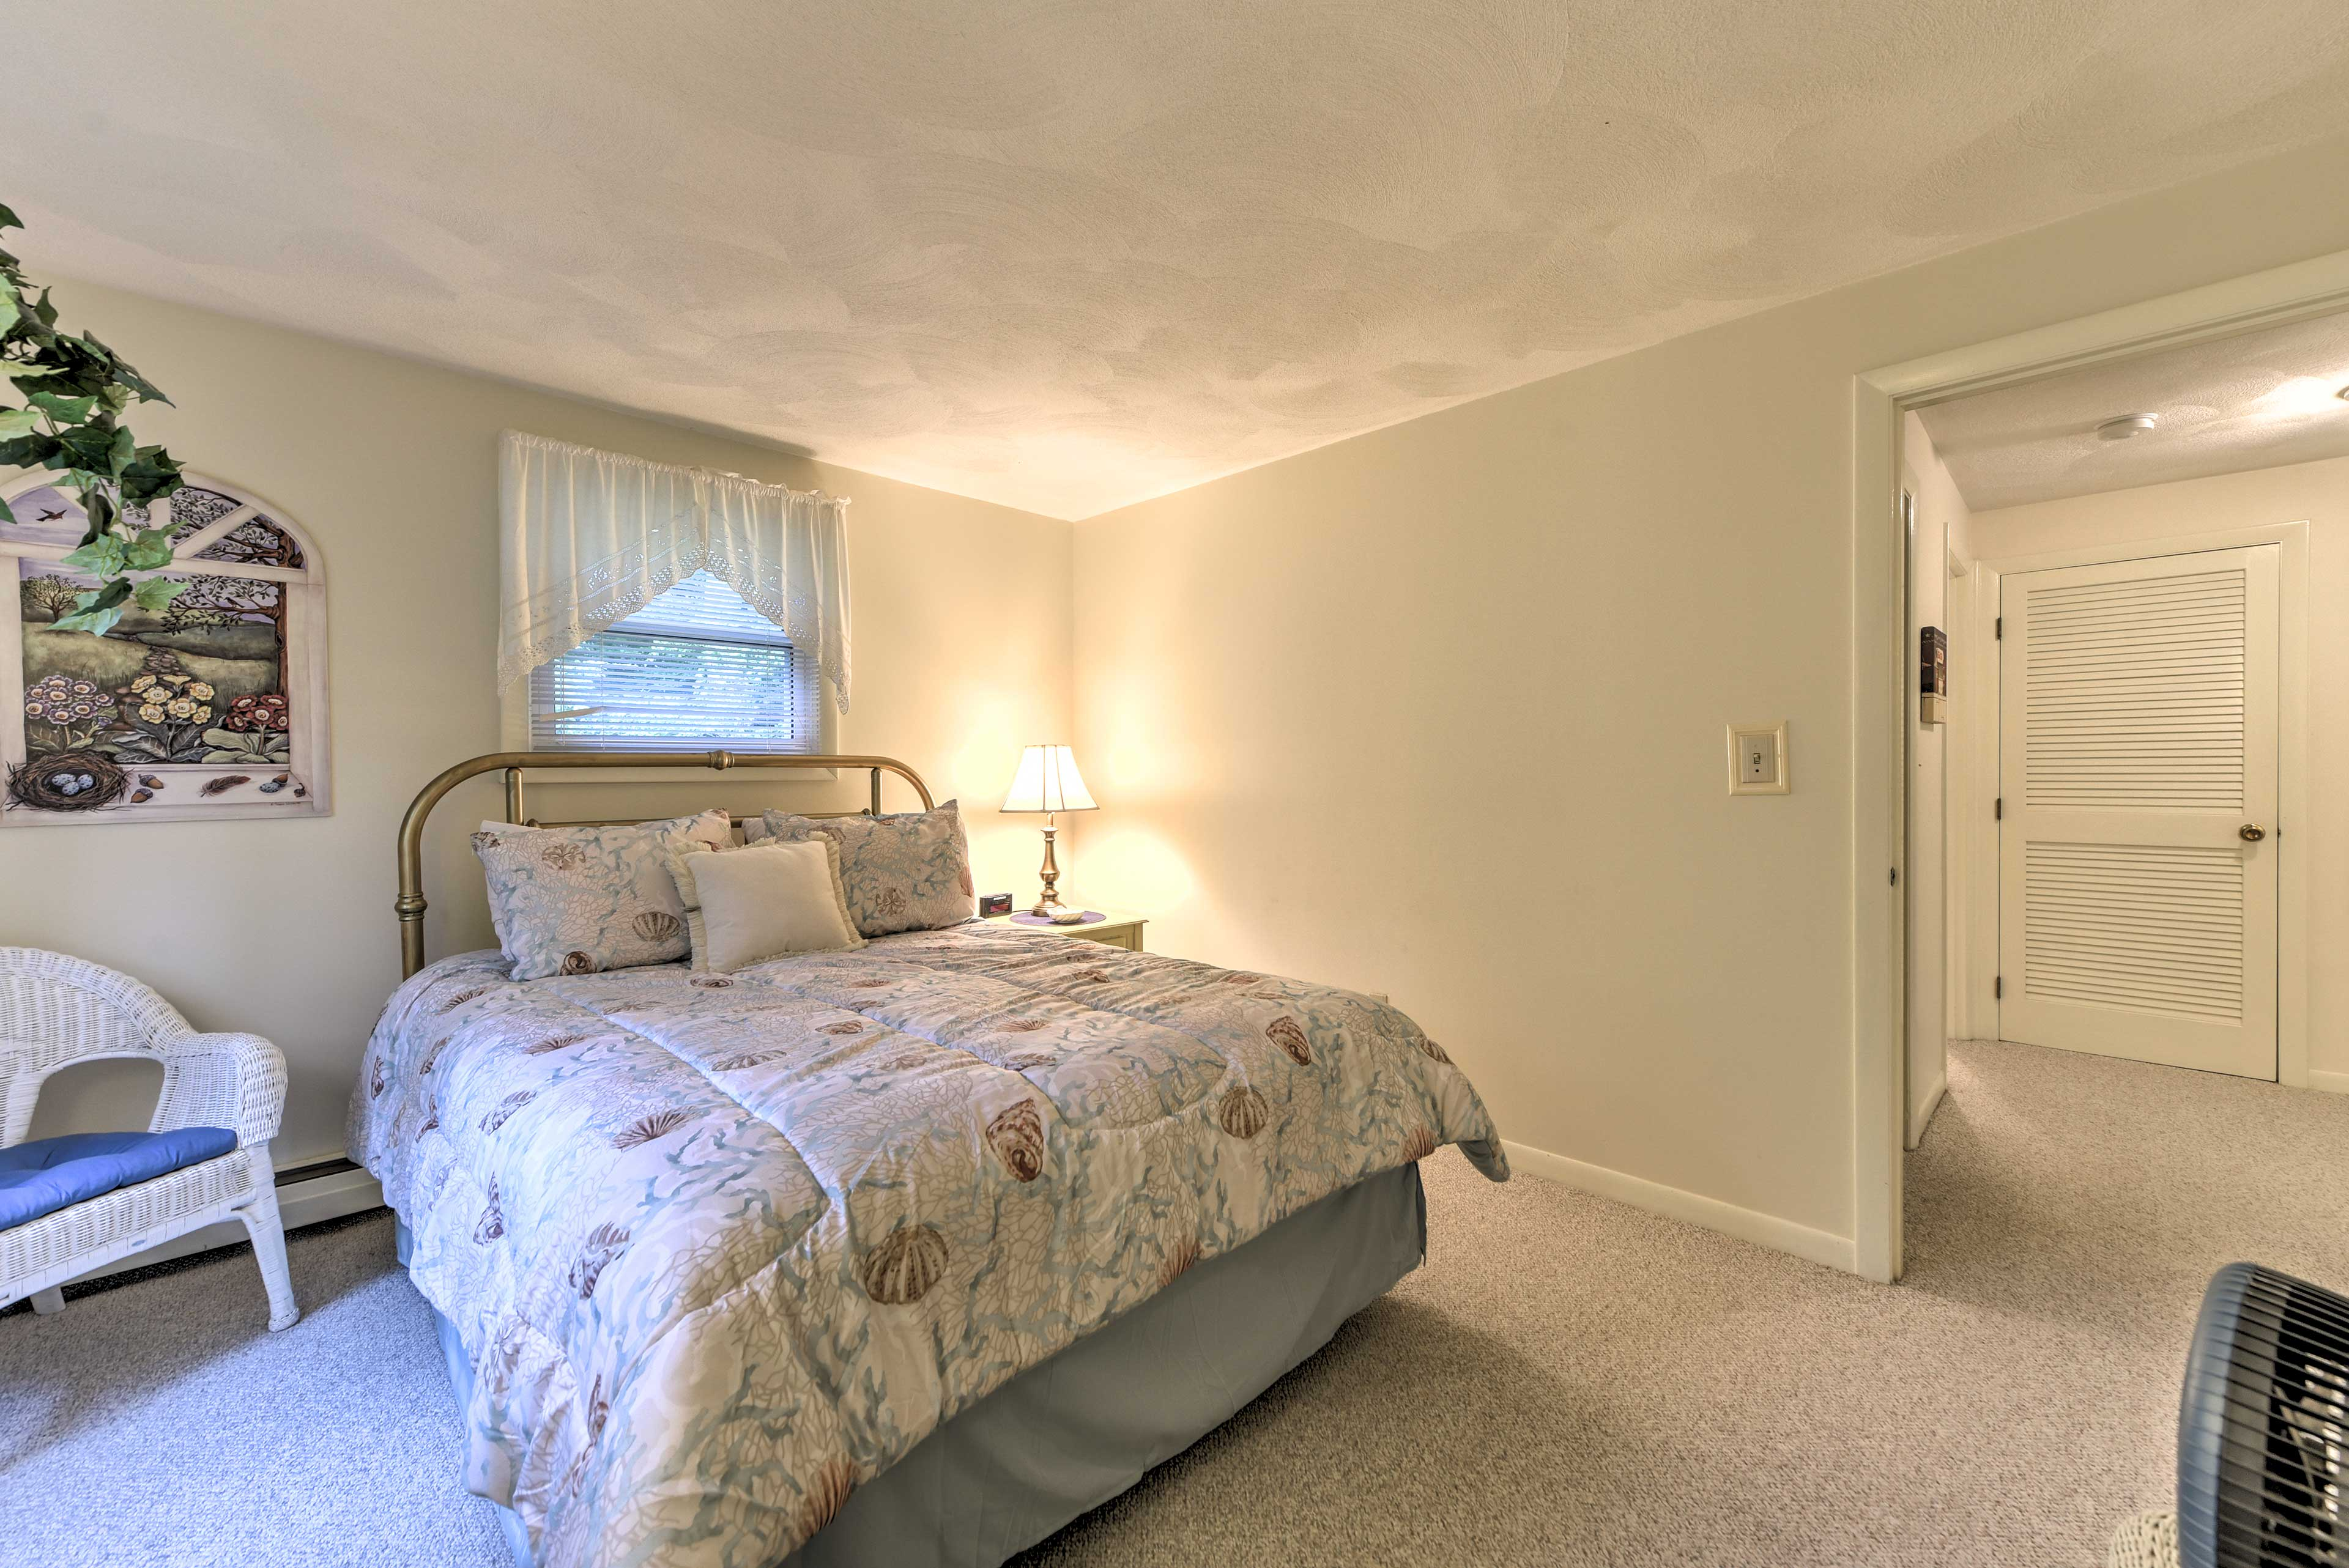 Those sharing this bedroom will relish in restful nights of sleep in the queen.